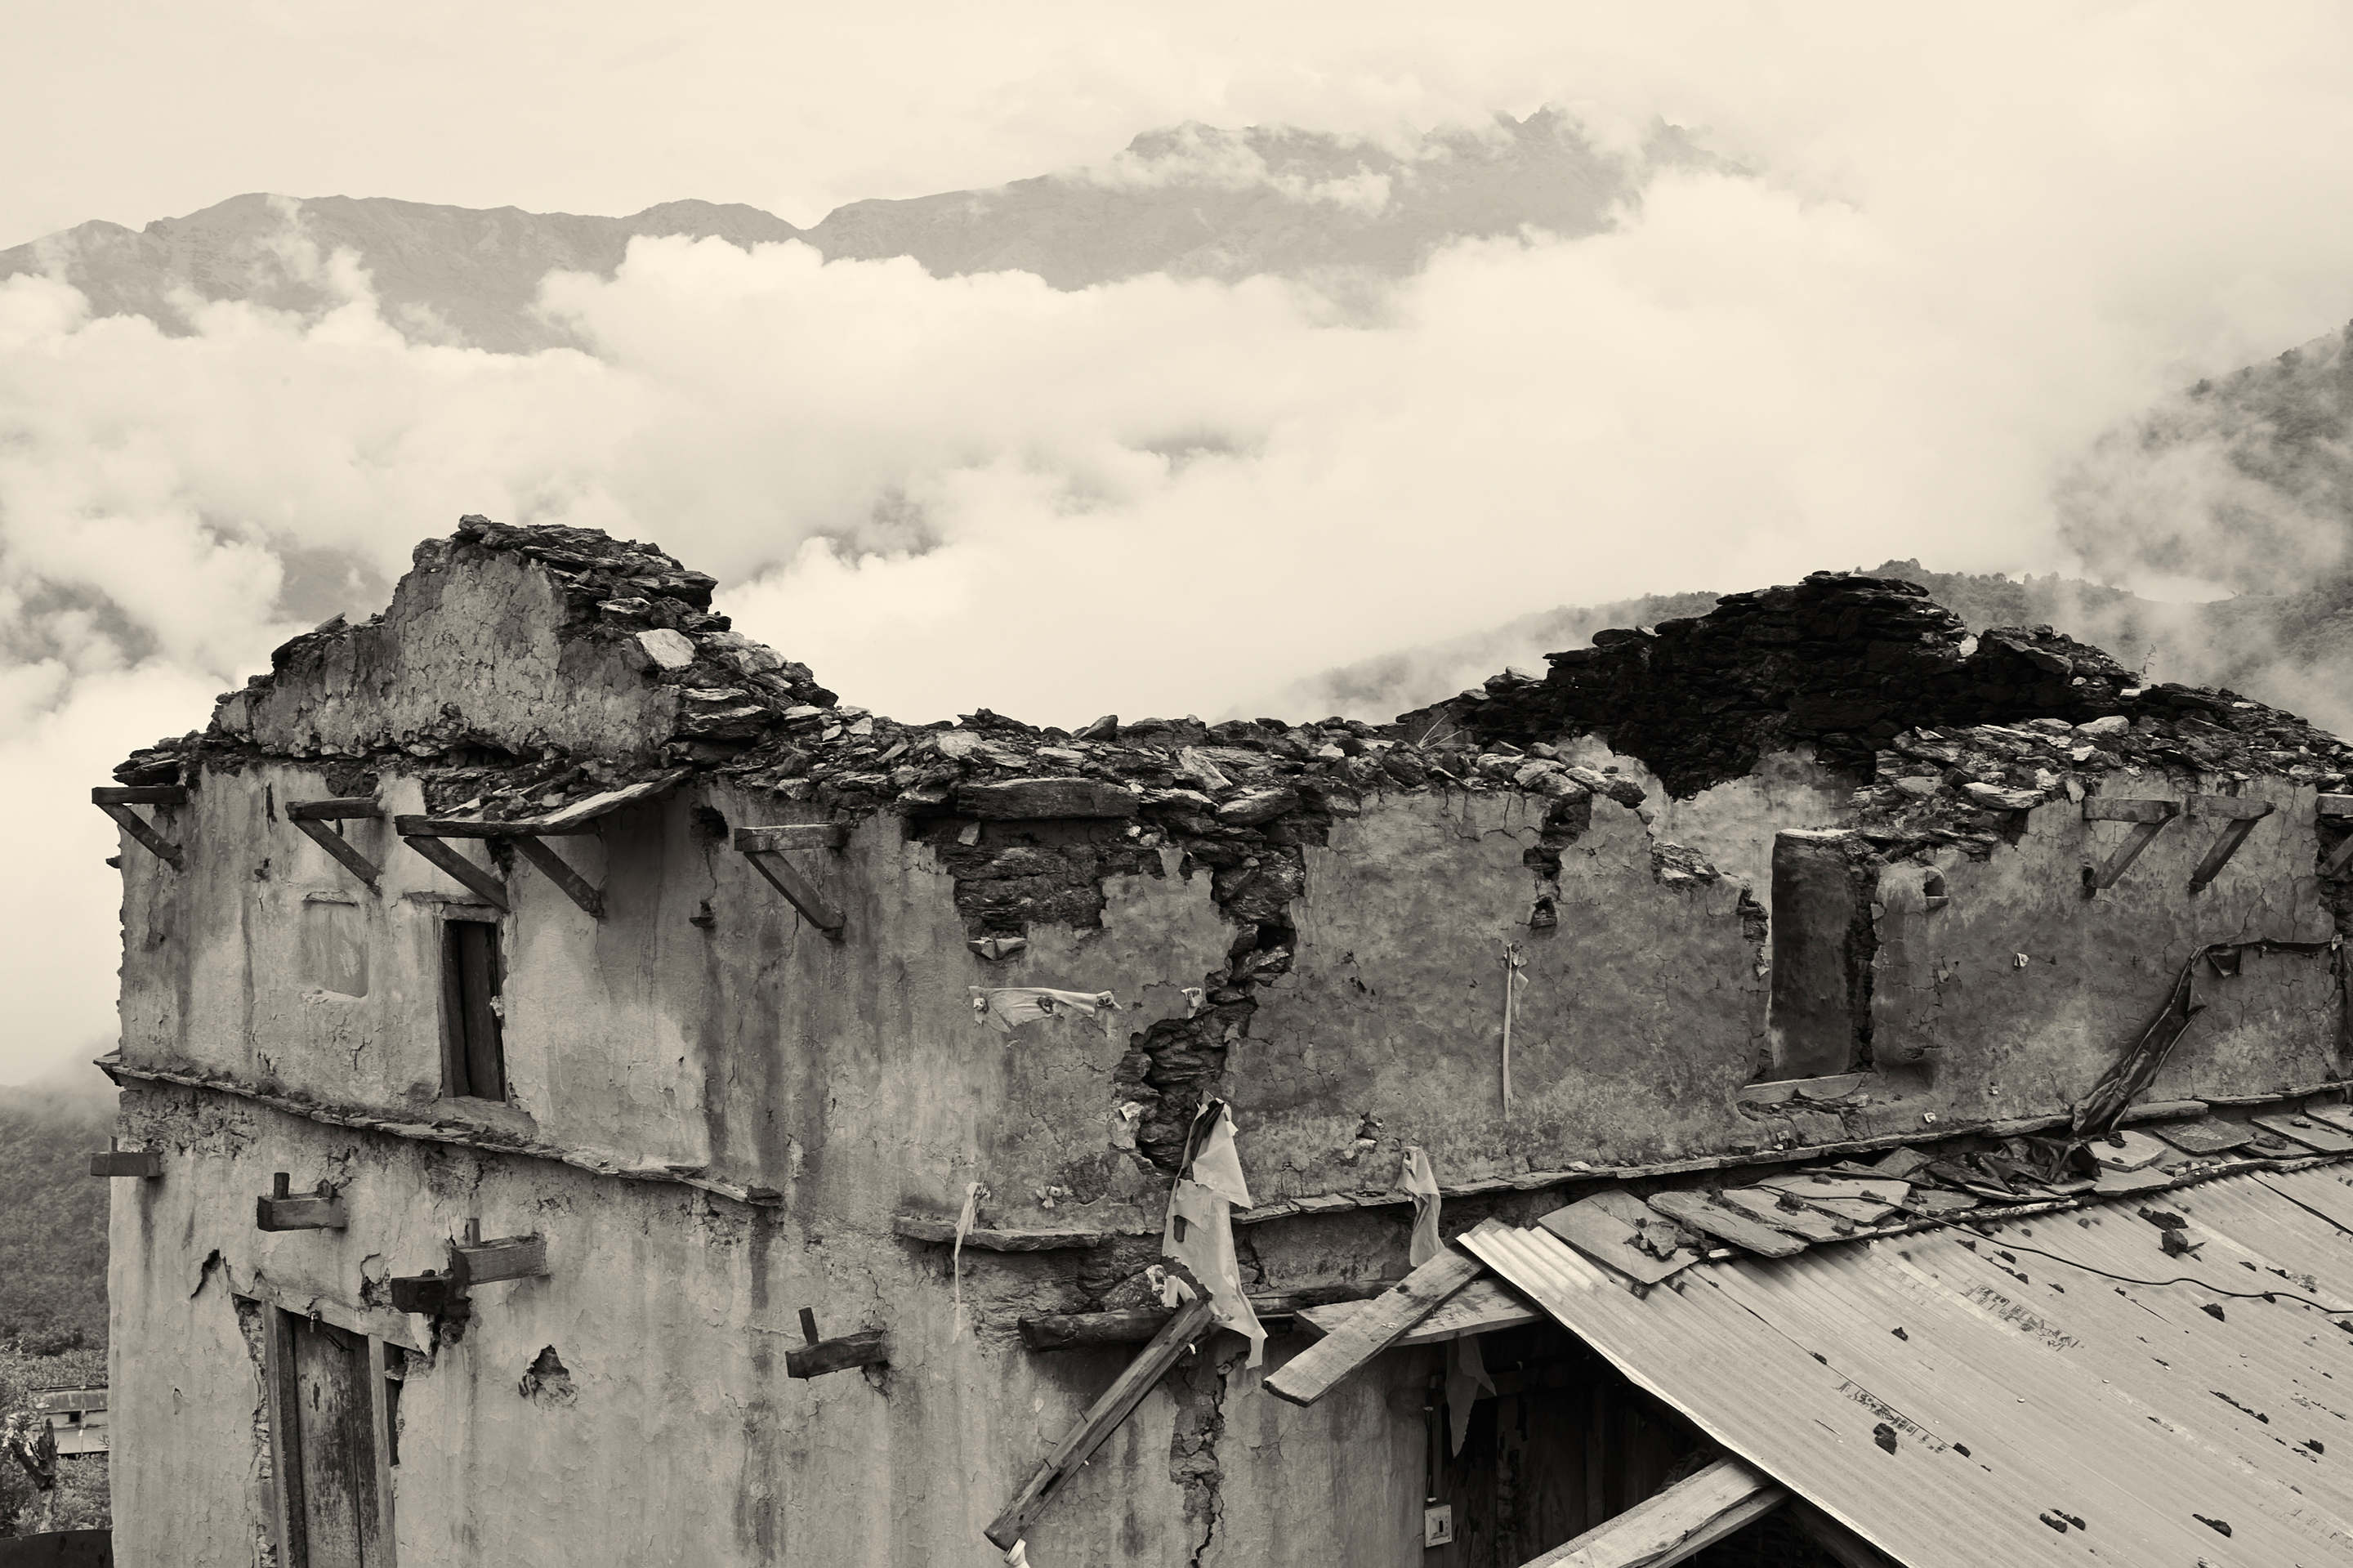 Gorka district, Nepal 2015. Earthquake.